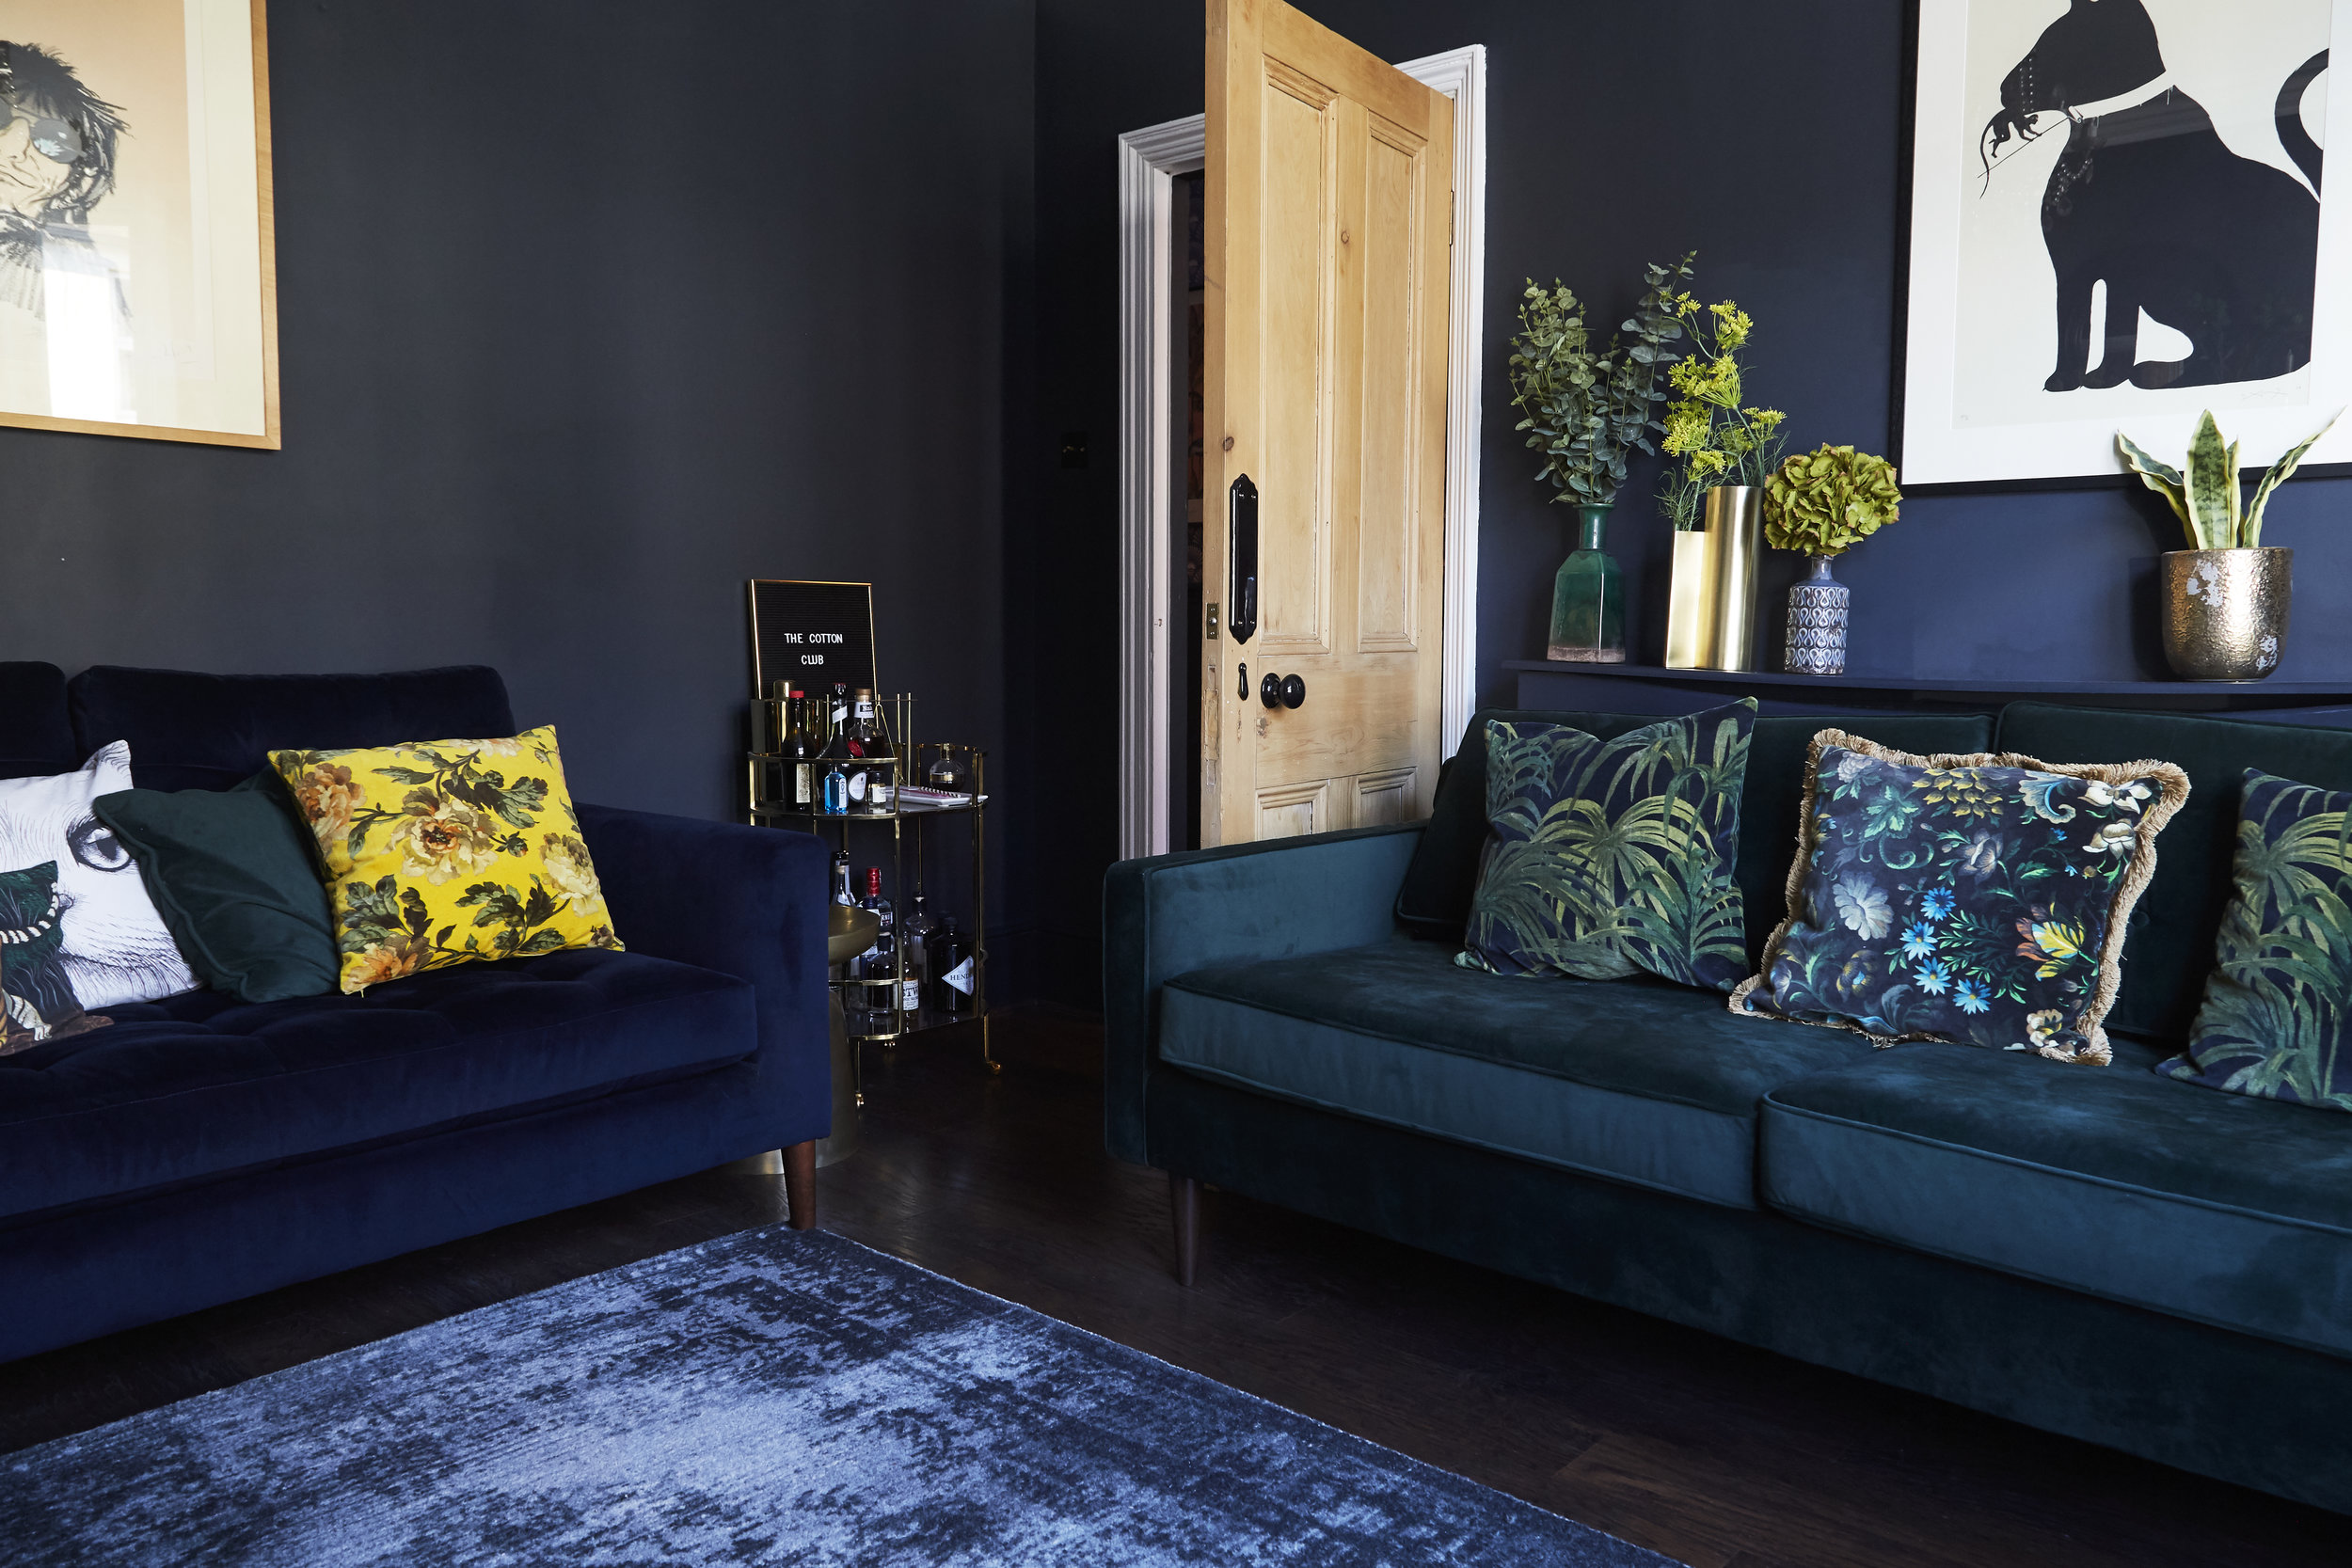 Drake Green velvet sofa   £999,   West Elm    ;    Staggered glass floor lamp    £199,    West Elm   ;    Distressed Arabesque Wool Rug - Steel   £449, From   West Elm  ;   Large Nikolitsi Vase    £14 from    Oka   .